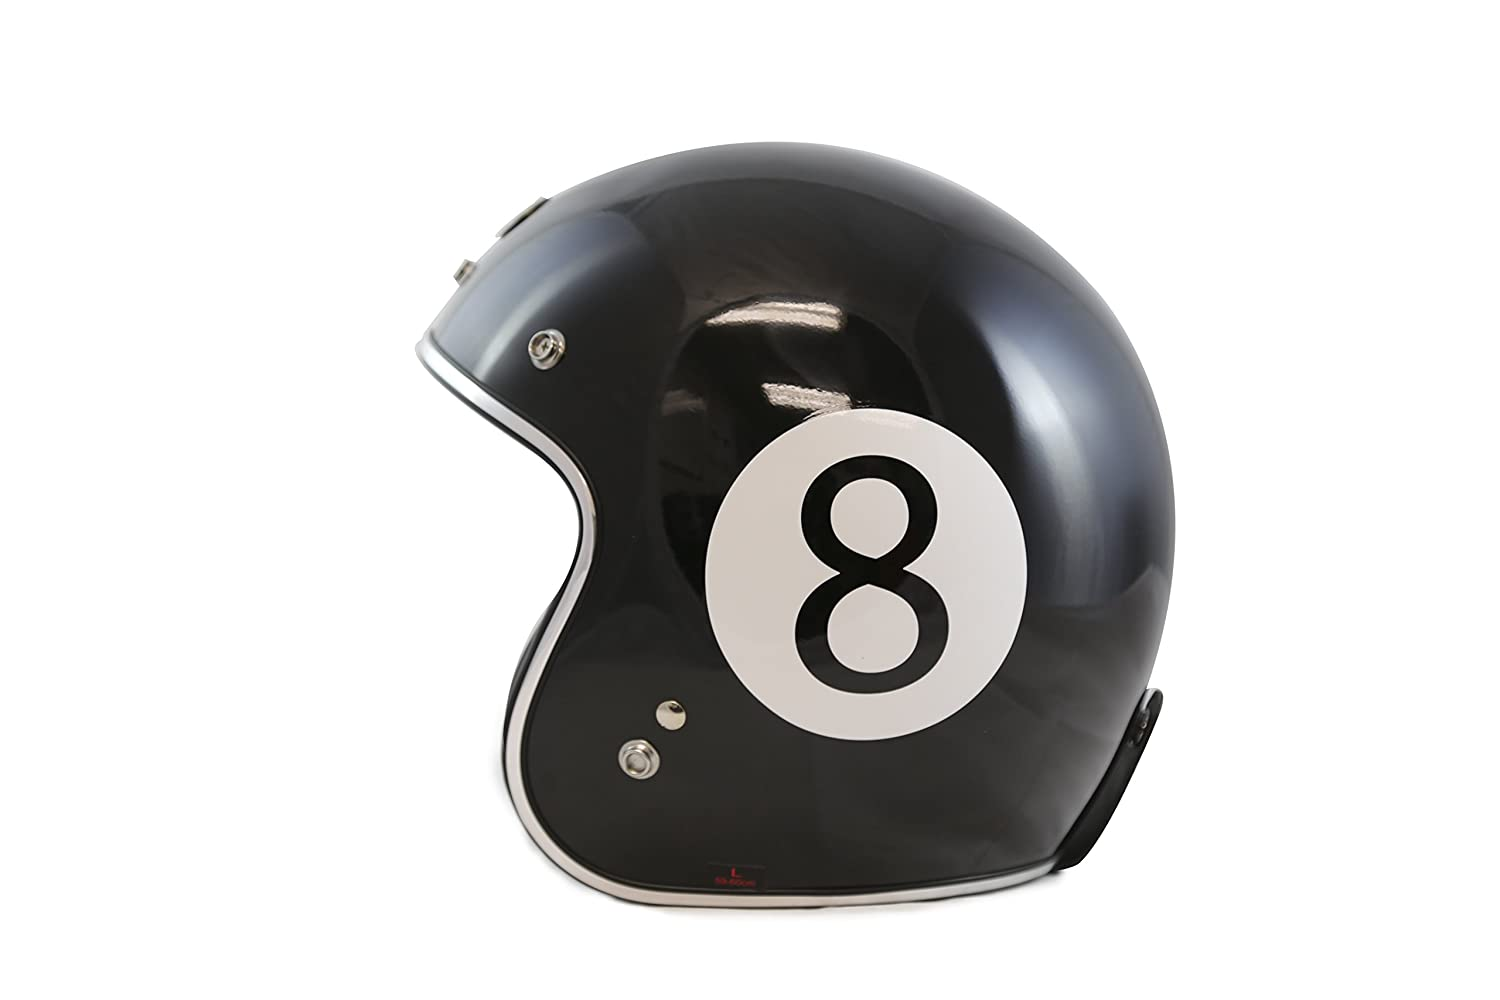 Amazon.com: TORC T50 Route 66 3/4 Helmet with Baller Graphic (Black, Large): Automotive